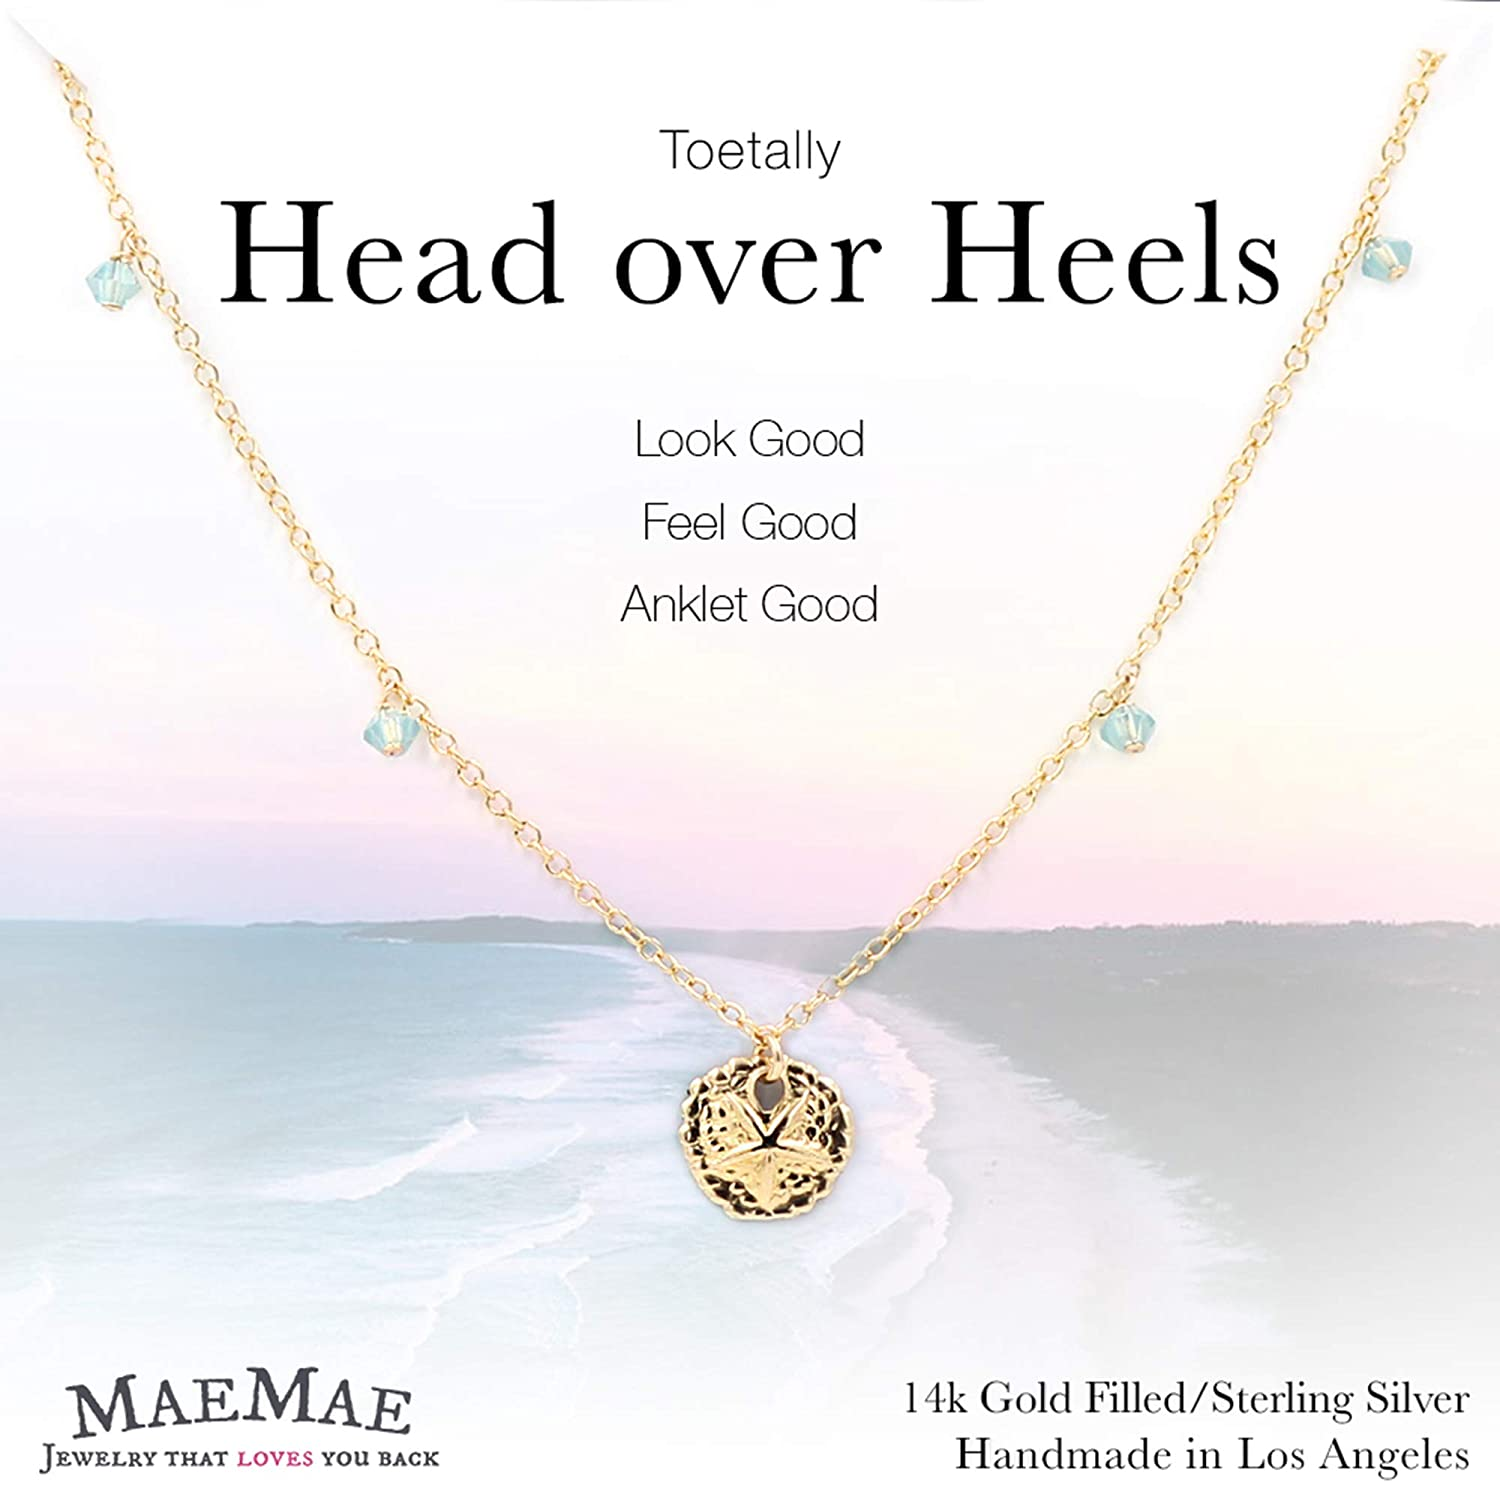 MaeMae 14k Gold Filled Sand Dollar Charm Anklet, 3mm Swarovski Crystals, Cable Chain, 8.5+1 Extender 8.5+1 Extender MaeMae Jewelry